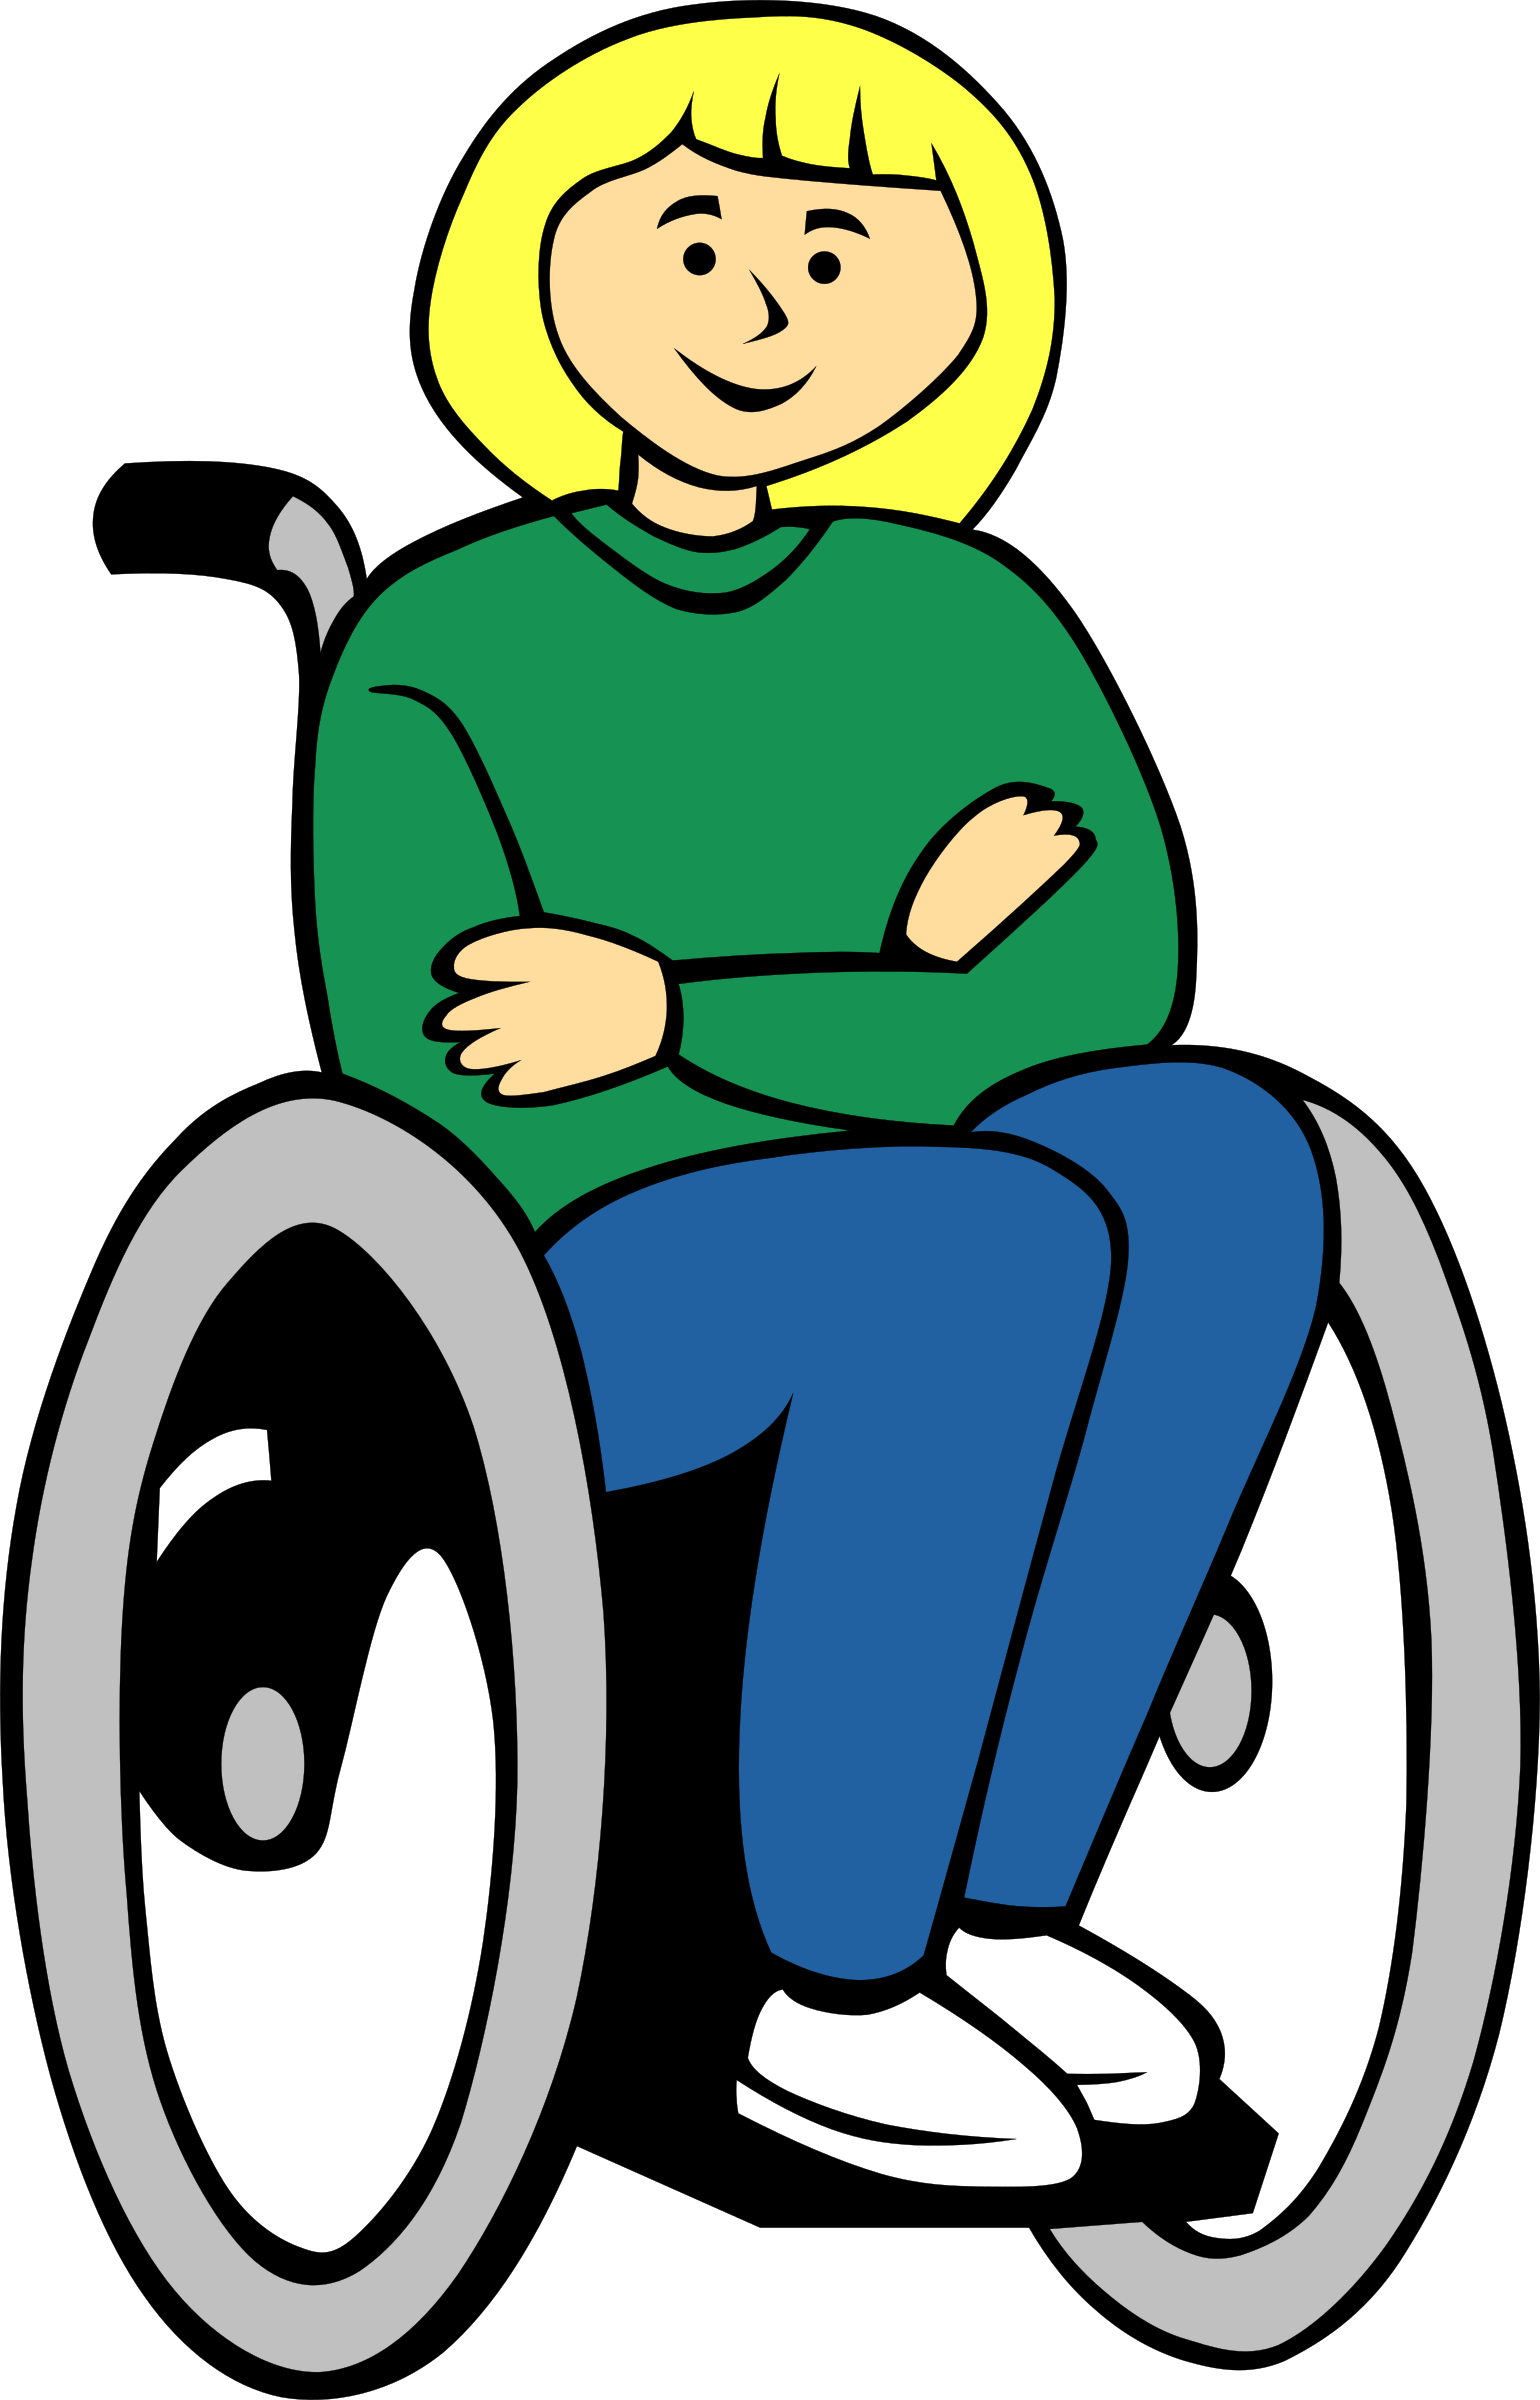 Girl in wheelchair clipart clipart images gallery for free.